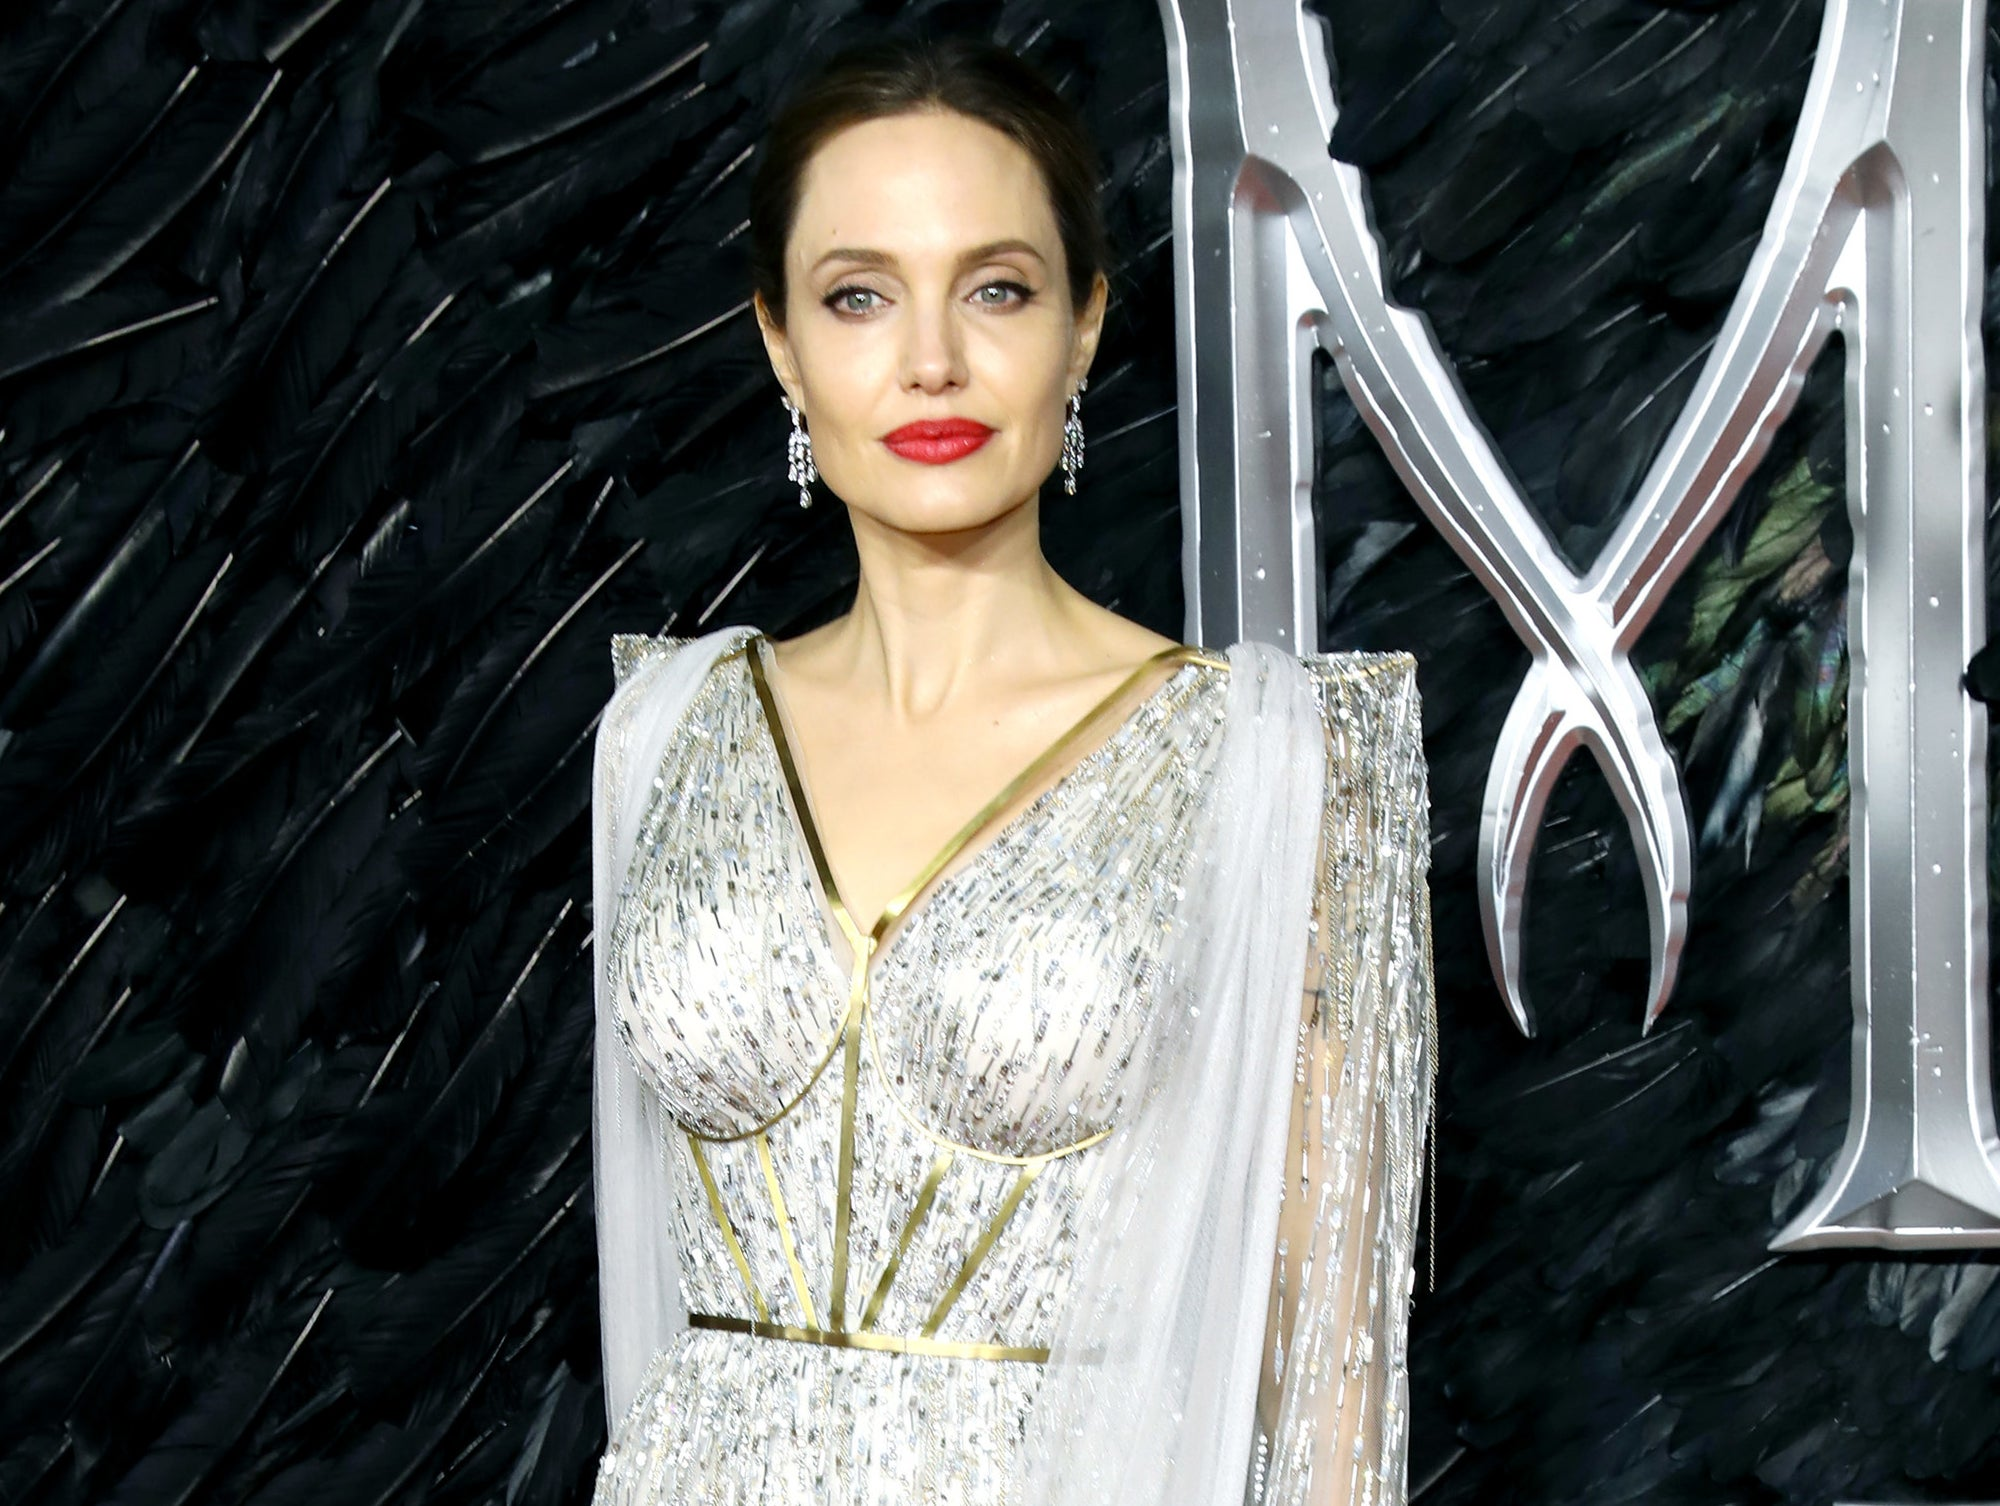 Angelina looks serious while posing in a silver dress with sheer sleeves